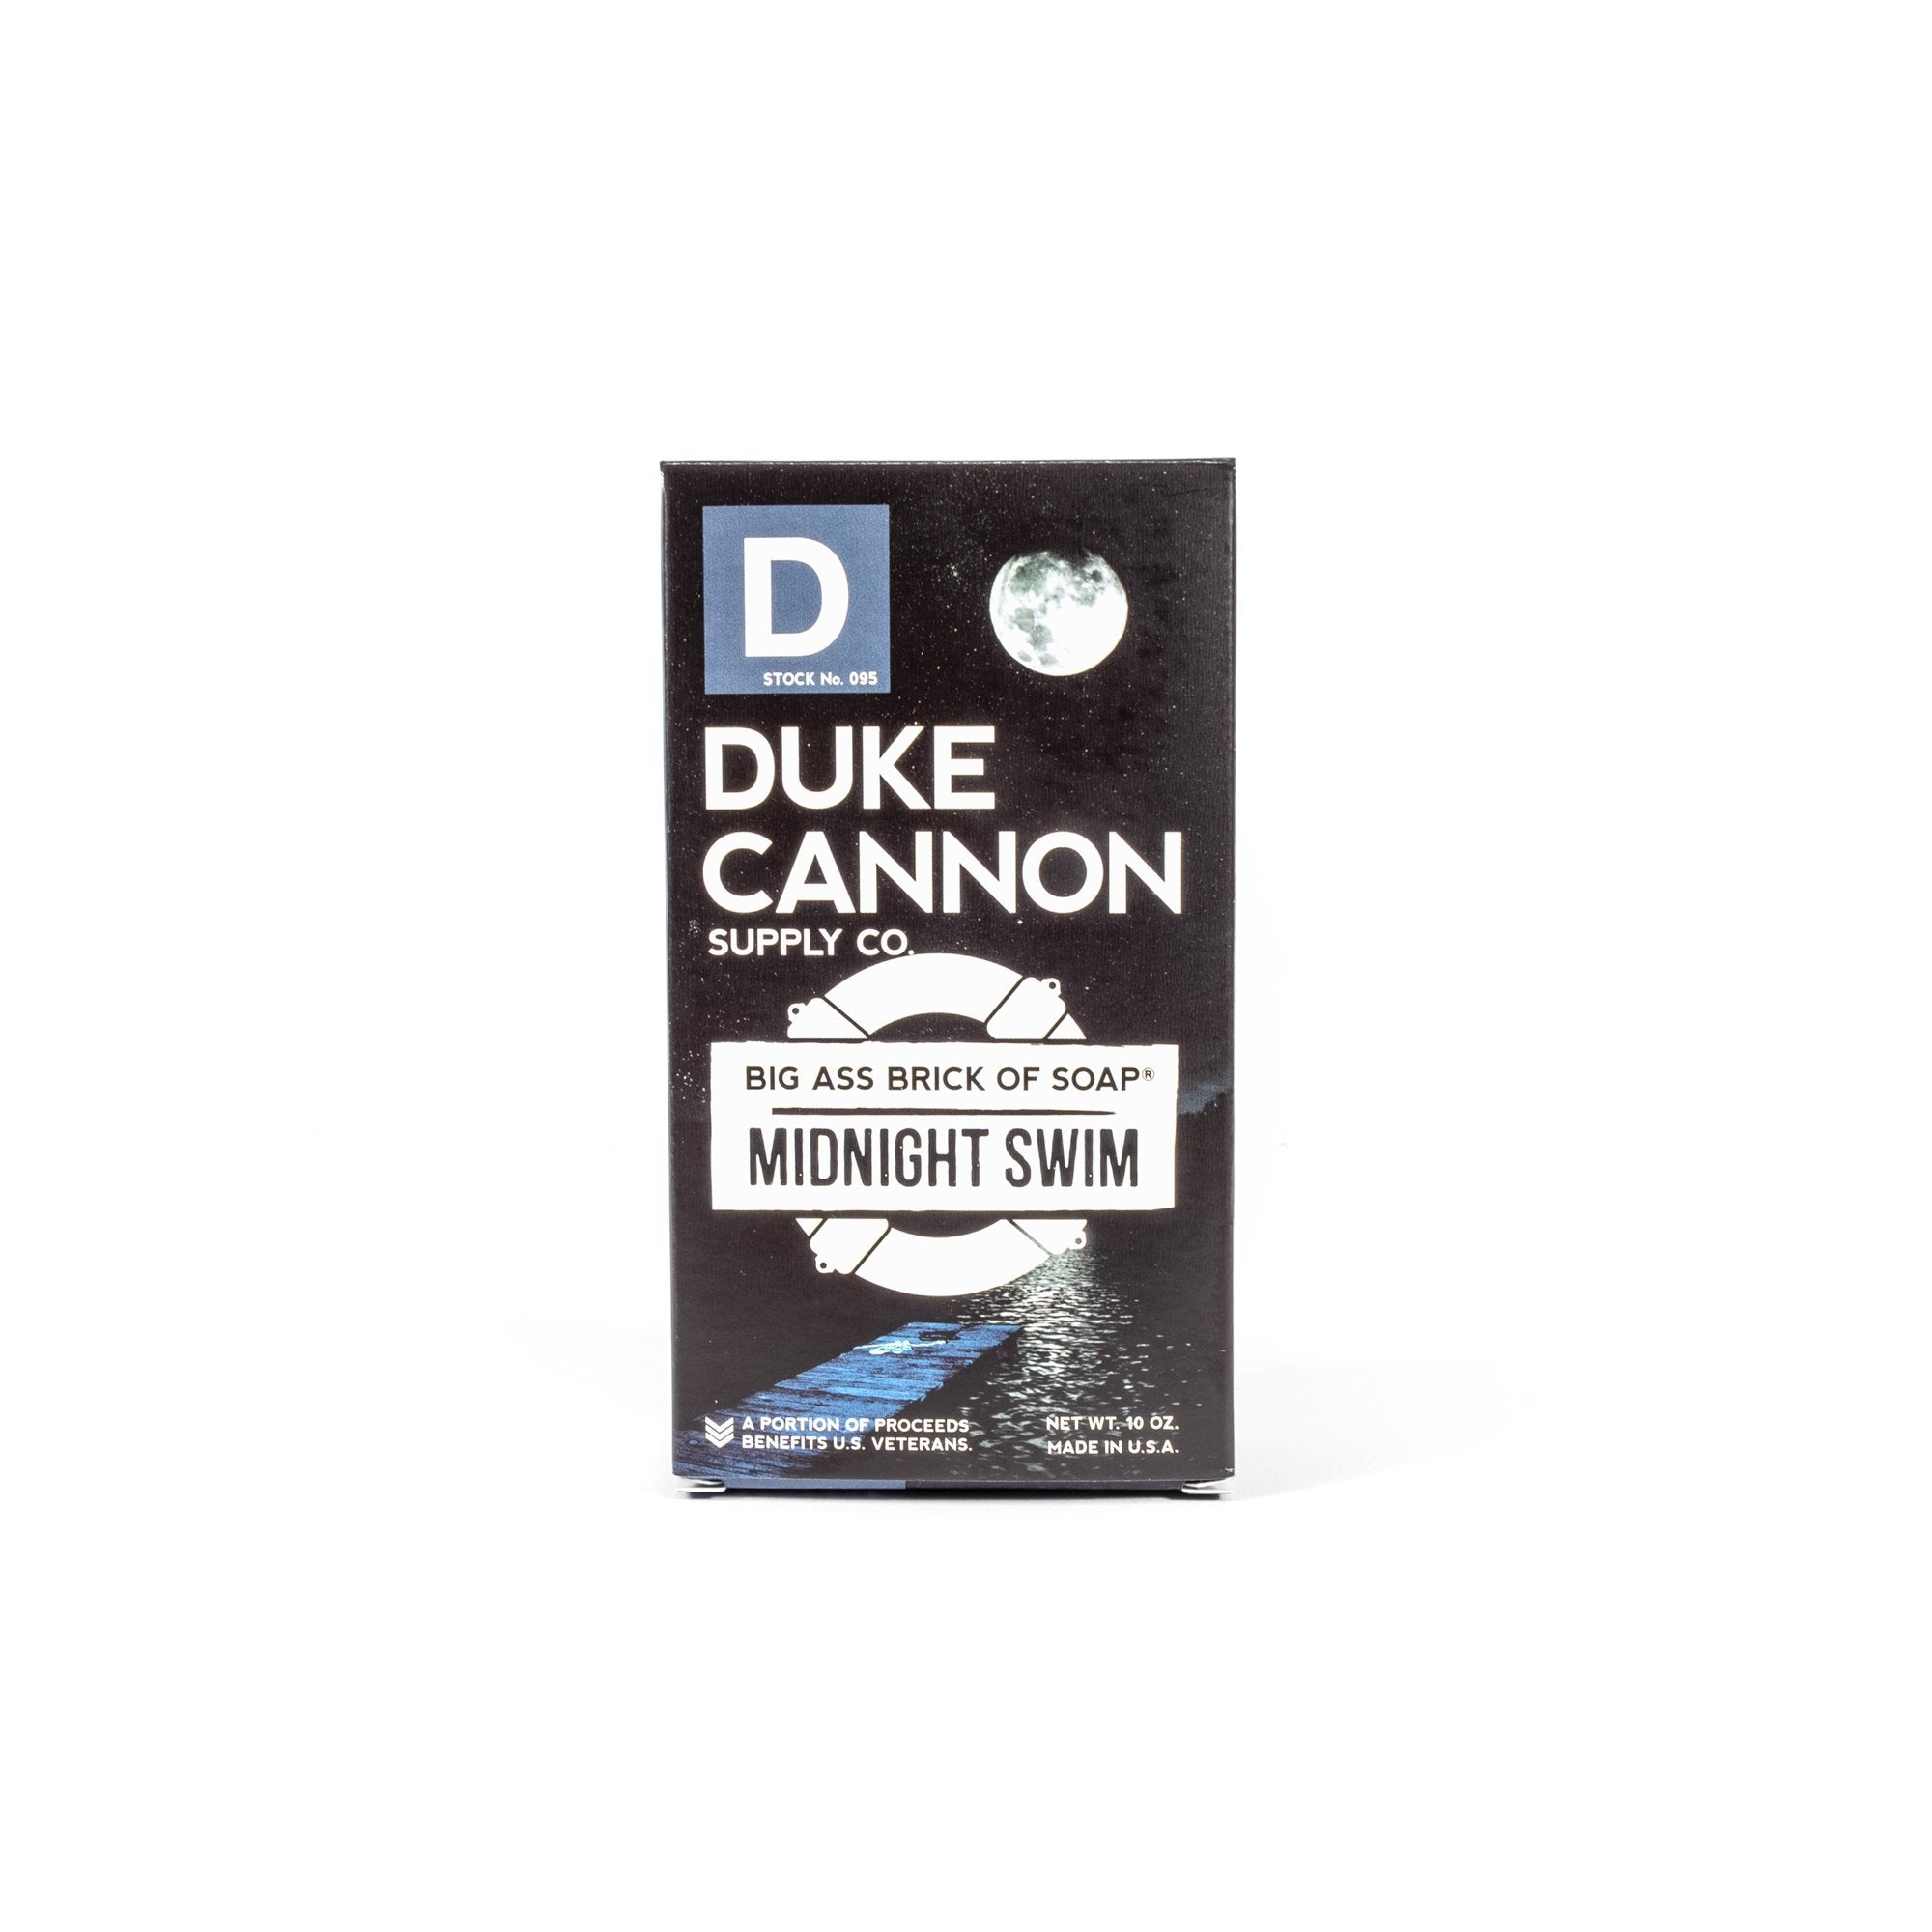 Big Ass Brick of Soap - Midnight Swim - Duke Cannon